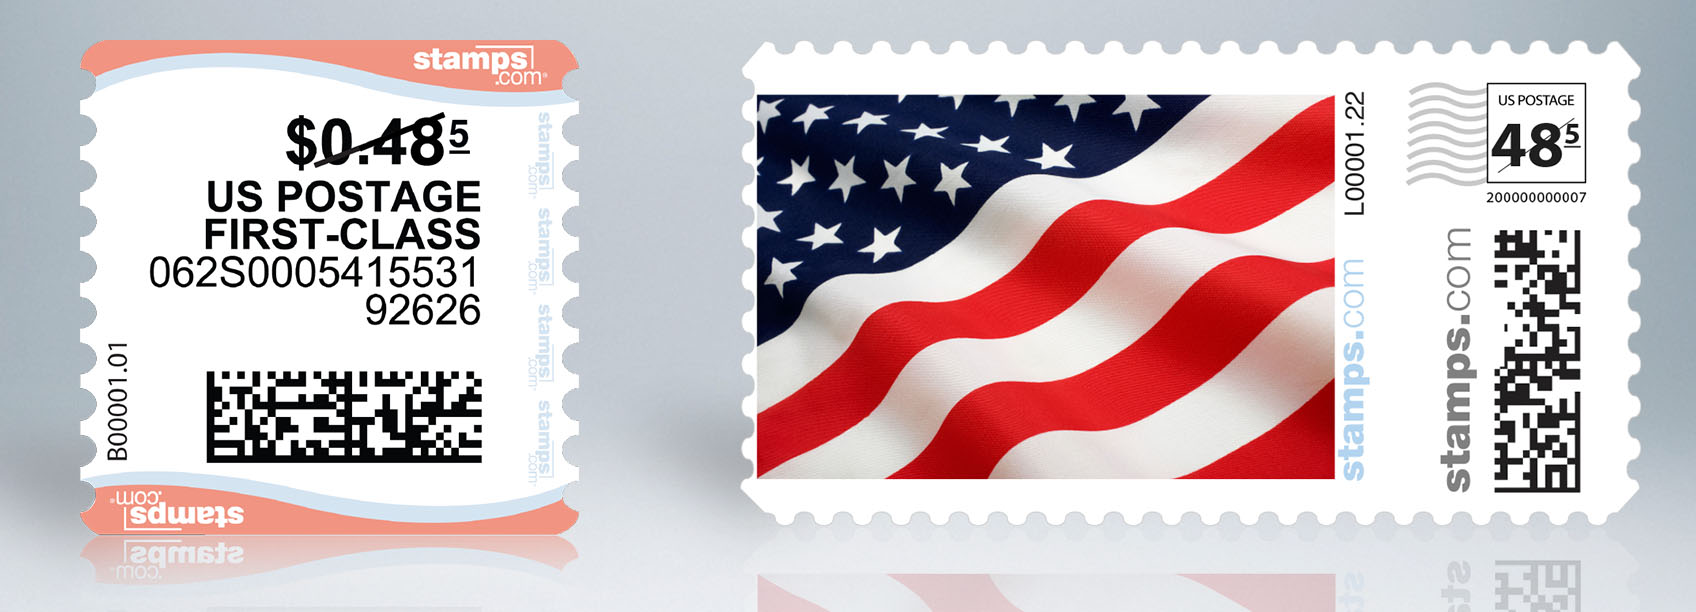 why can't i print stamps on plain paper?